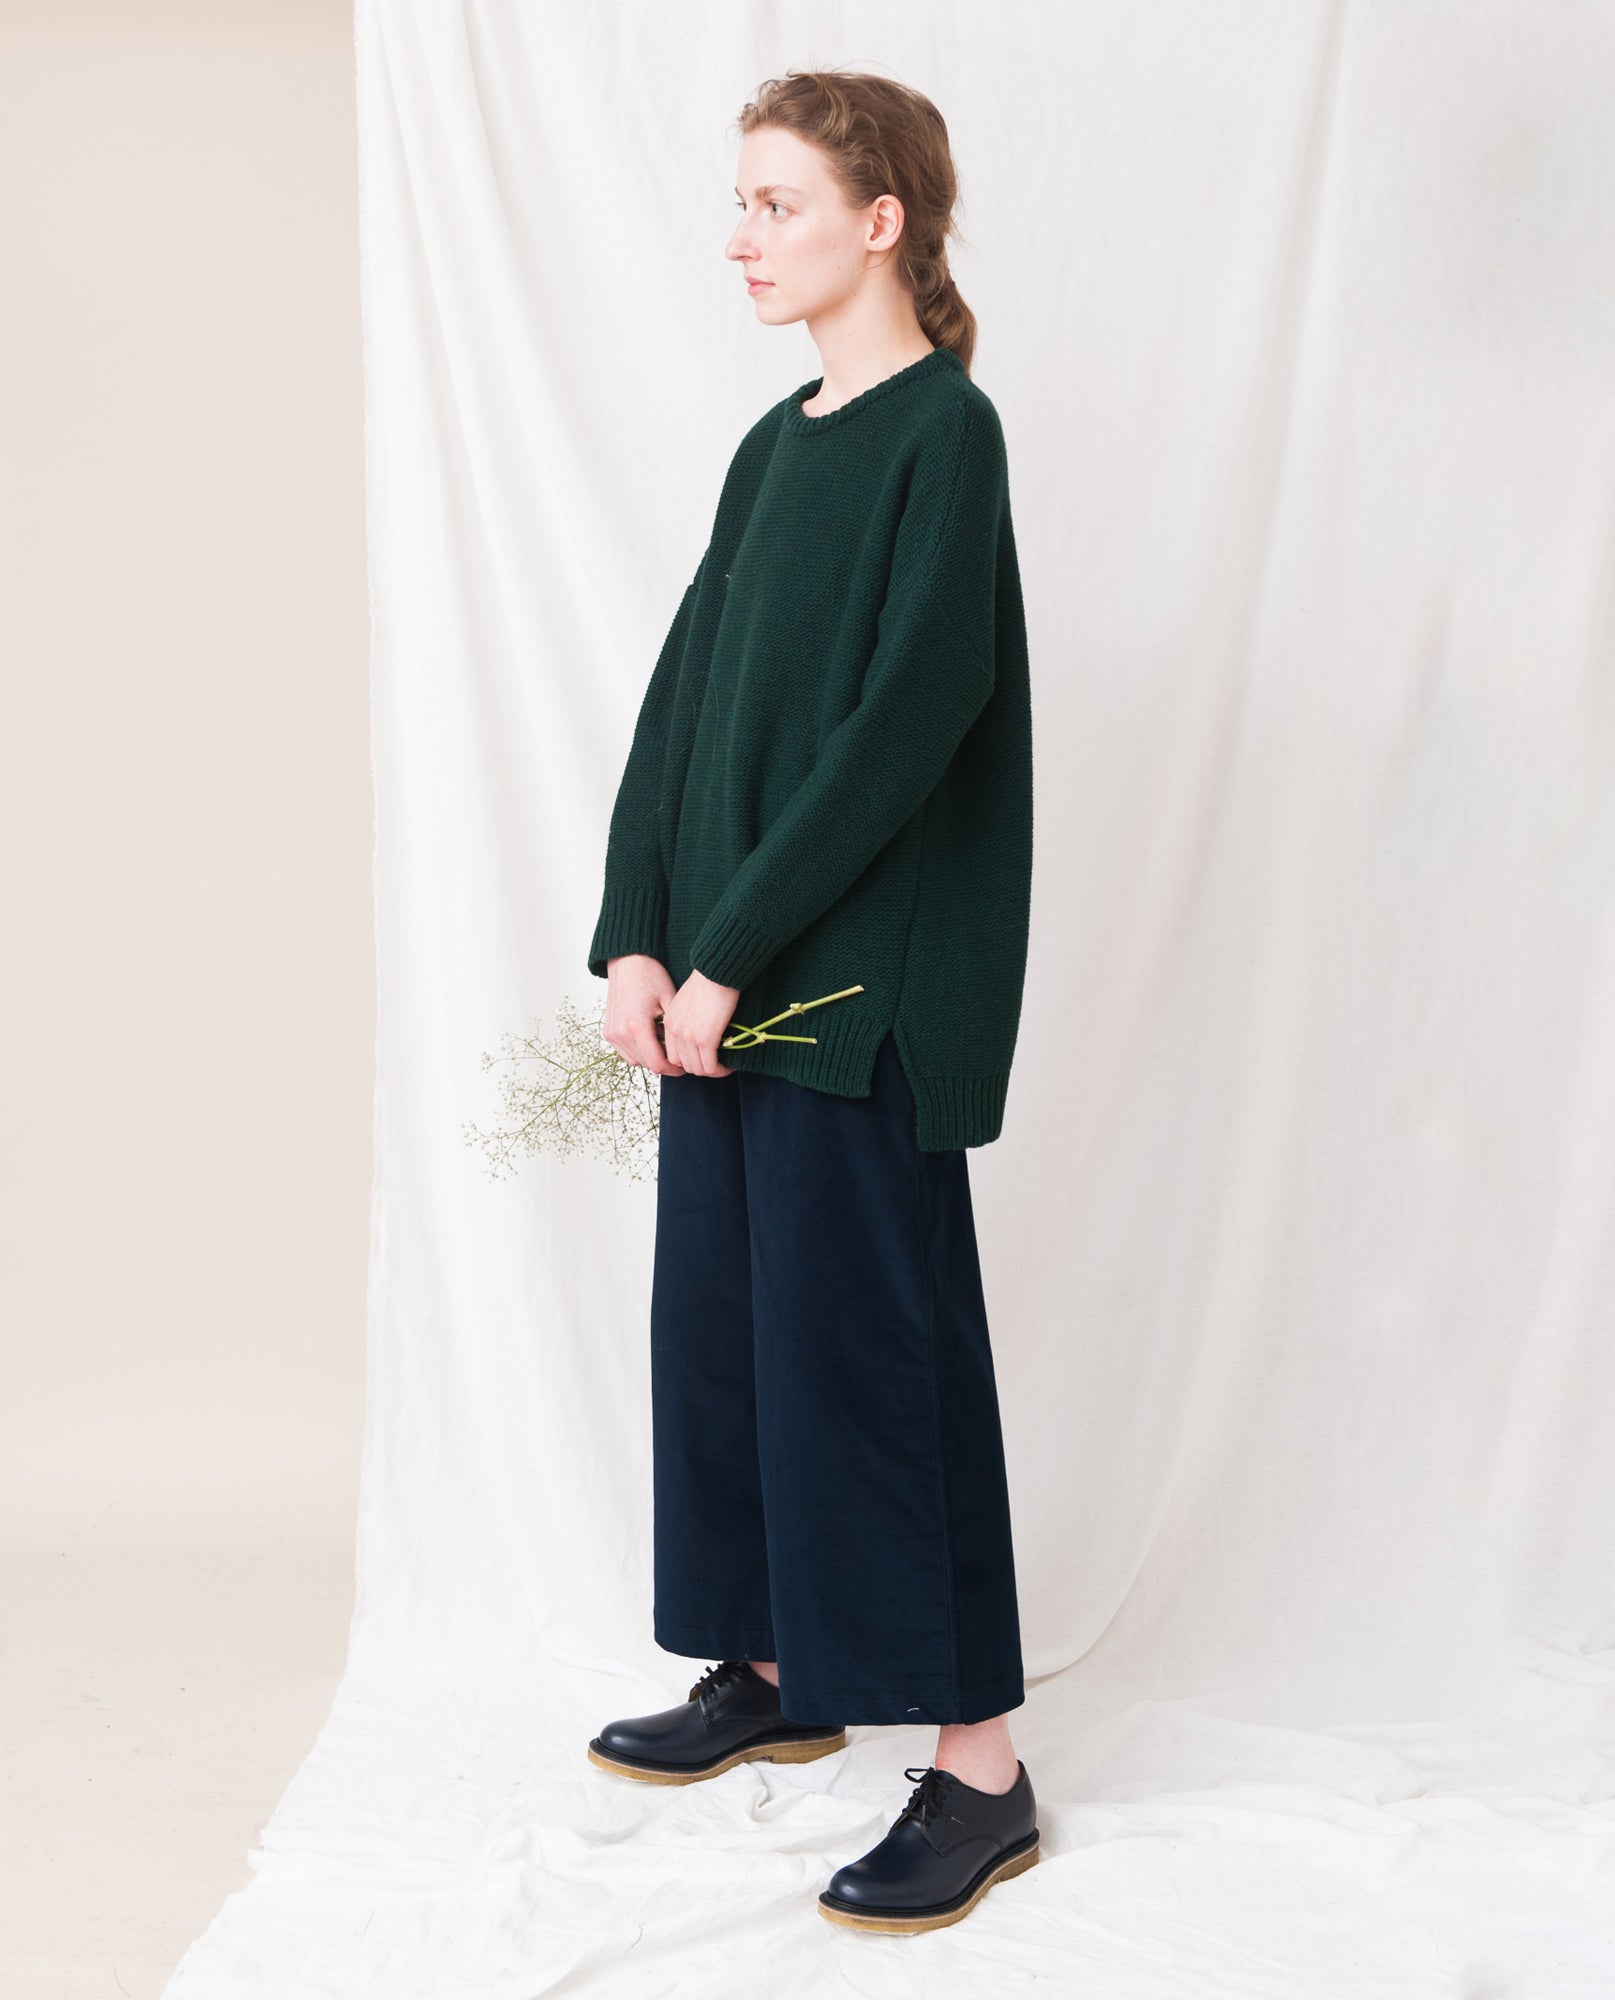 FAYE-MARIE Wool Knitted Jumper In Evergreen